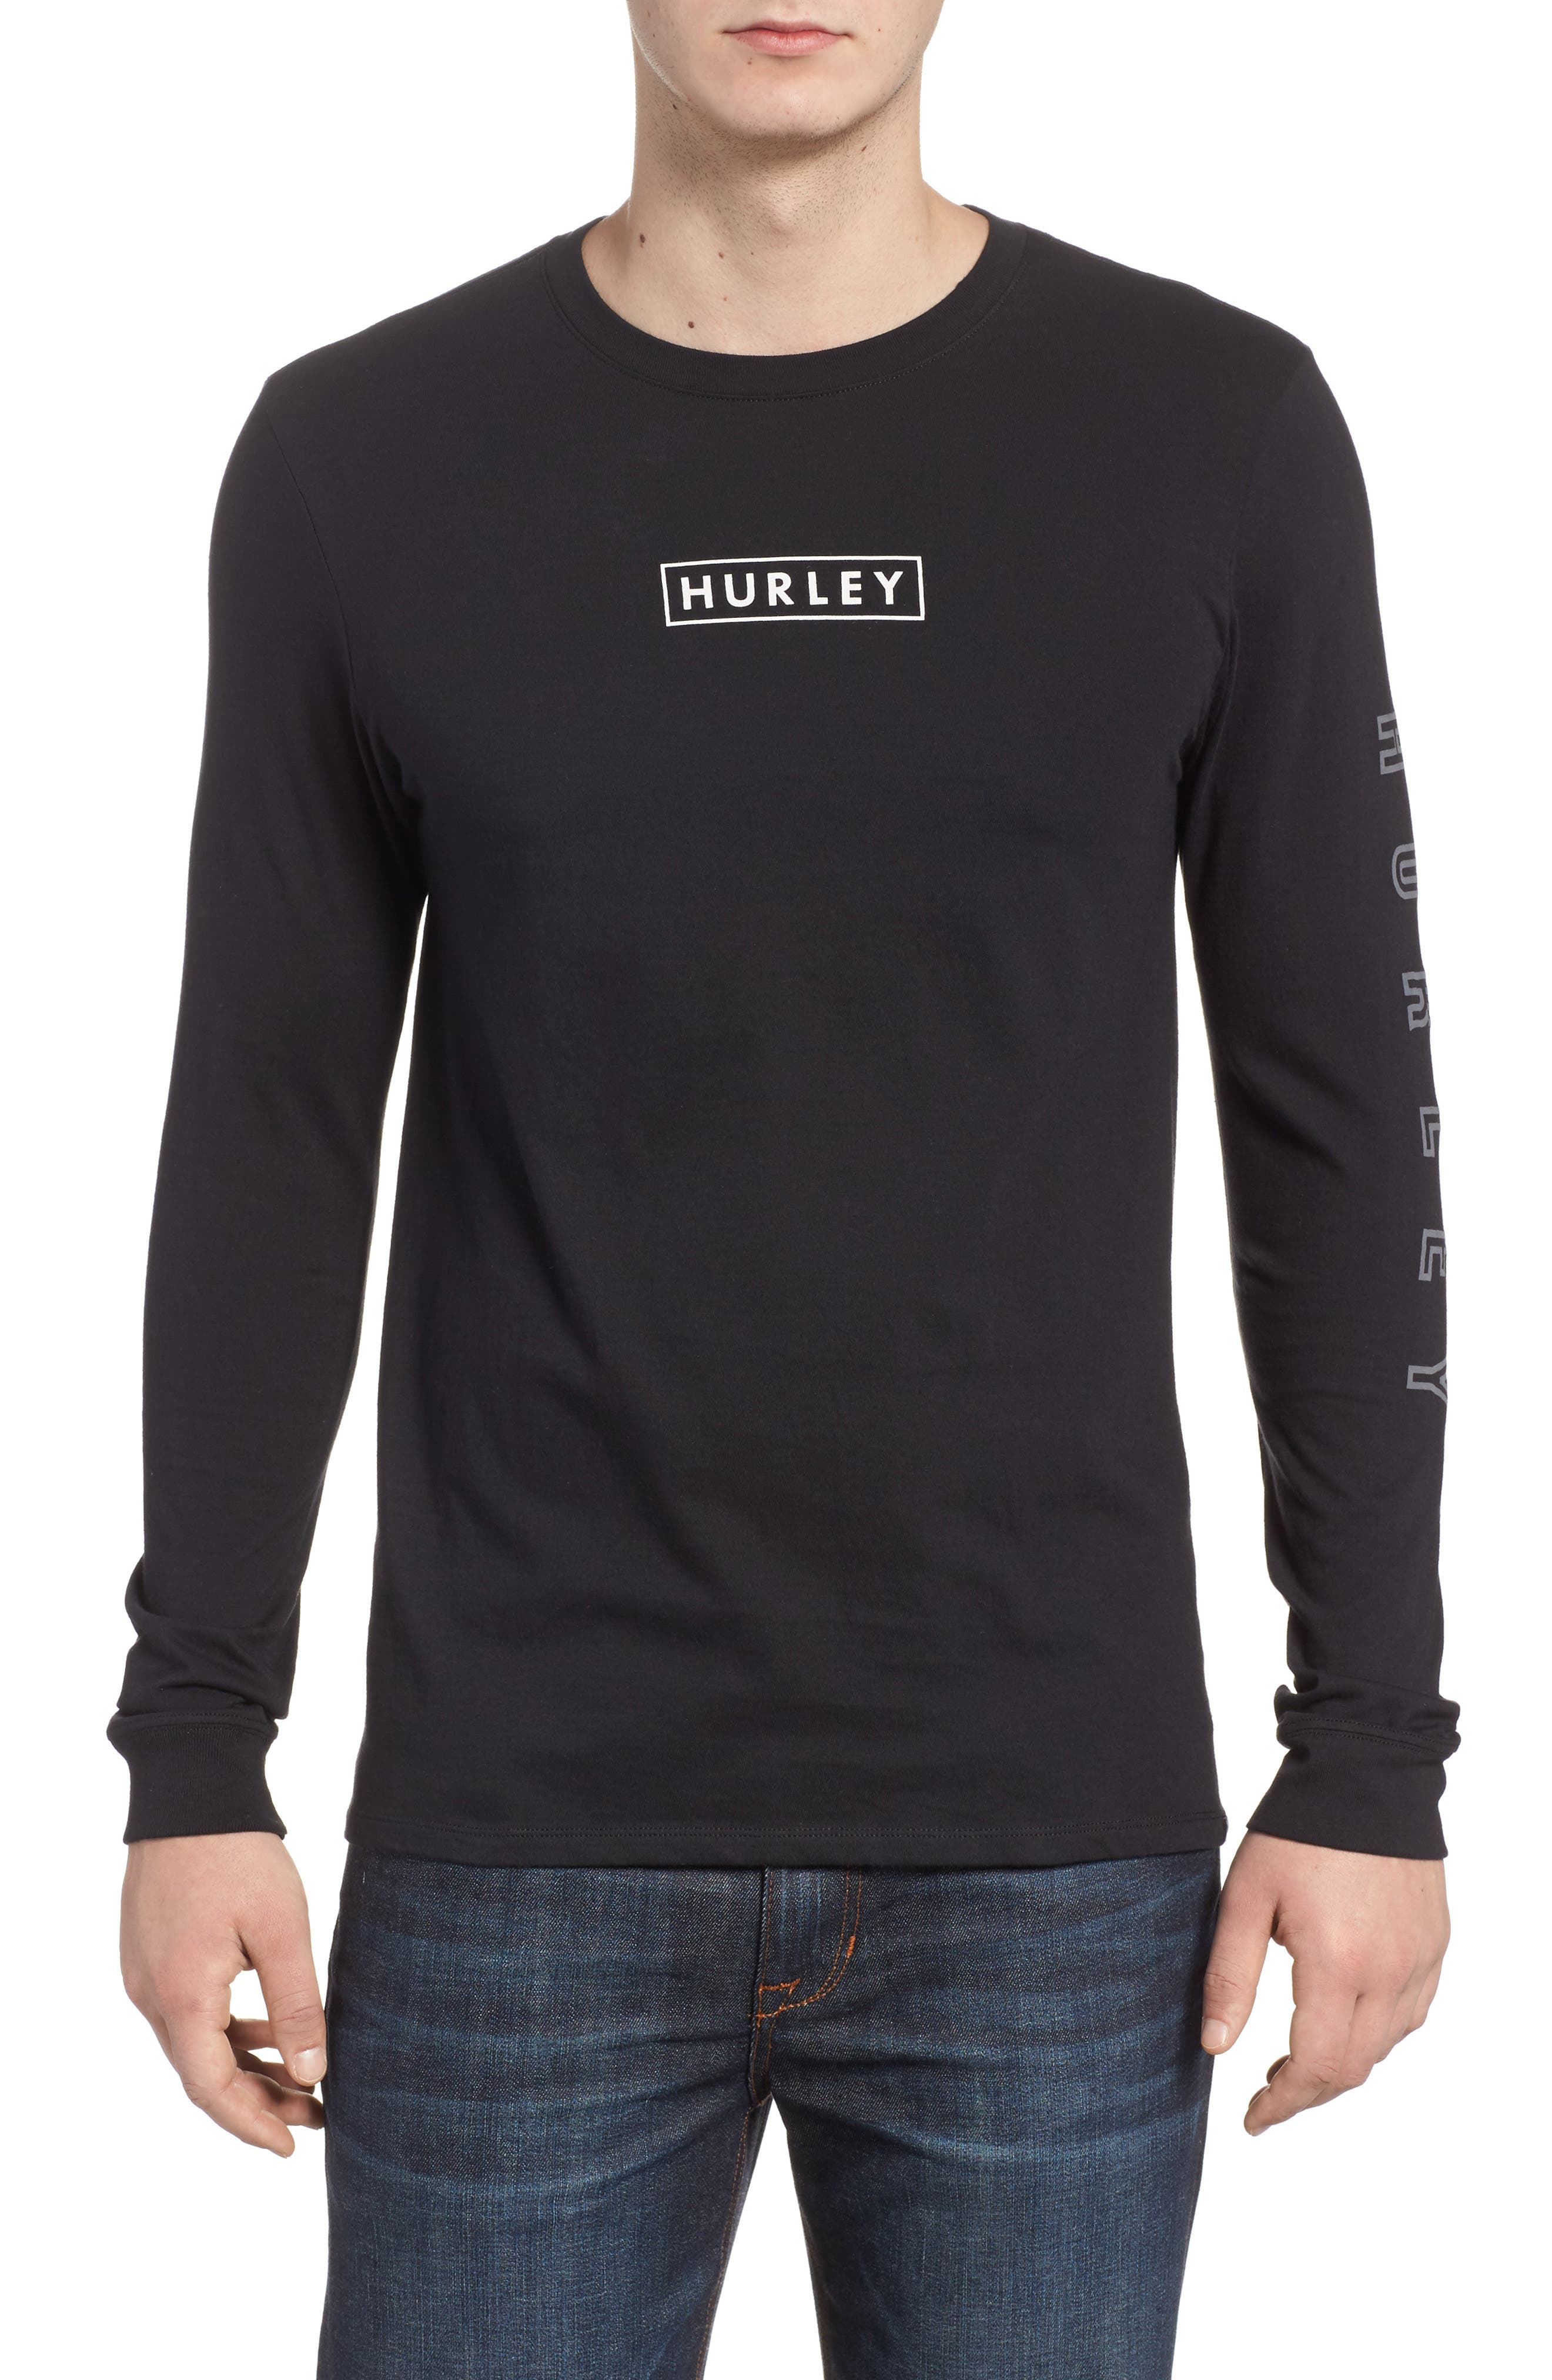 Hurley Port Logo Graphic Long Sleeve T-Shirt